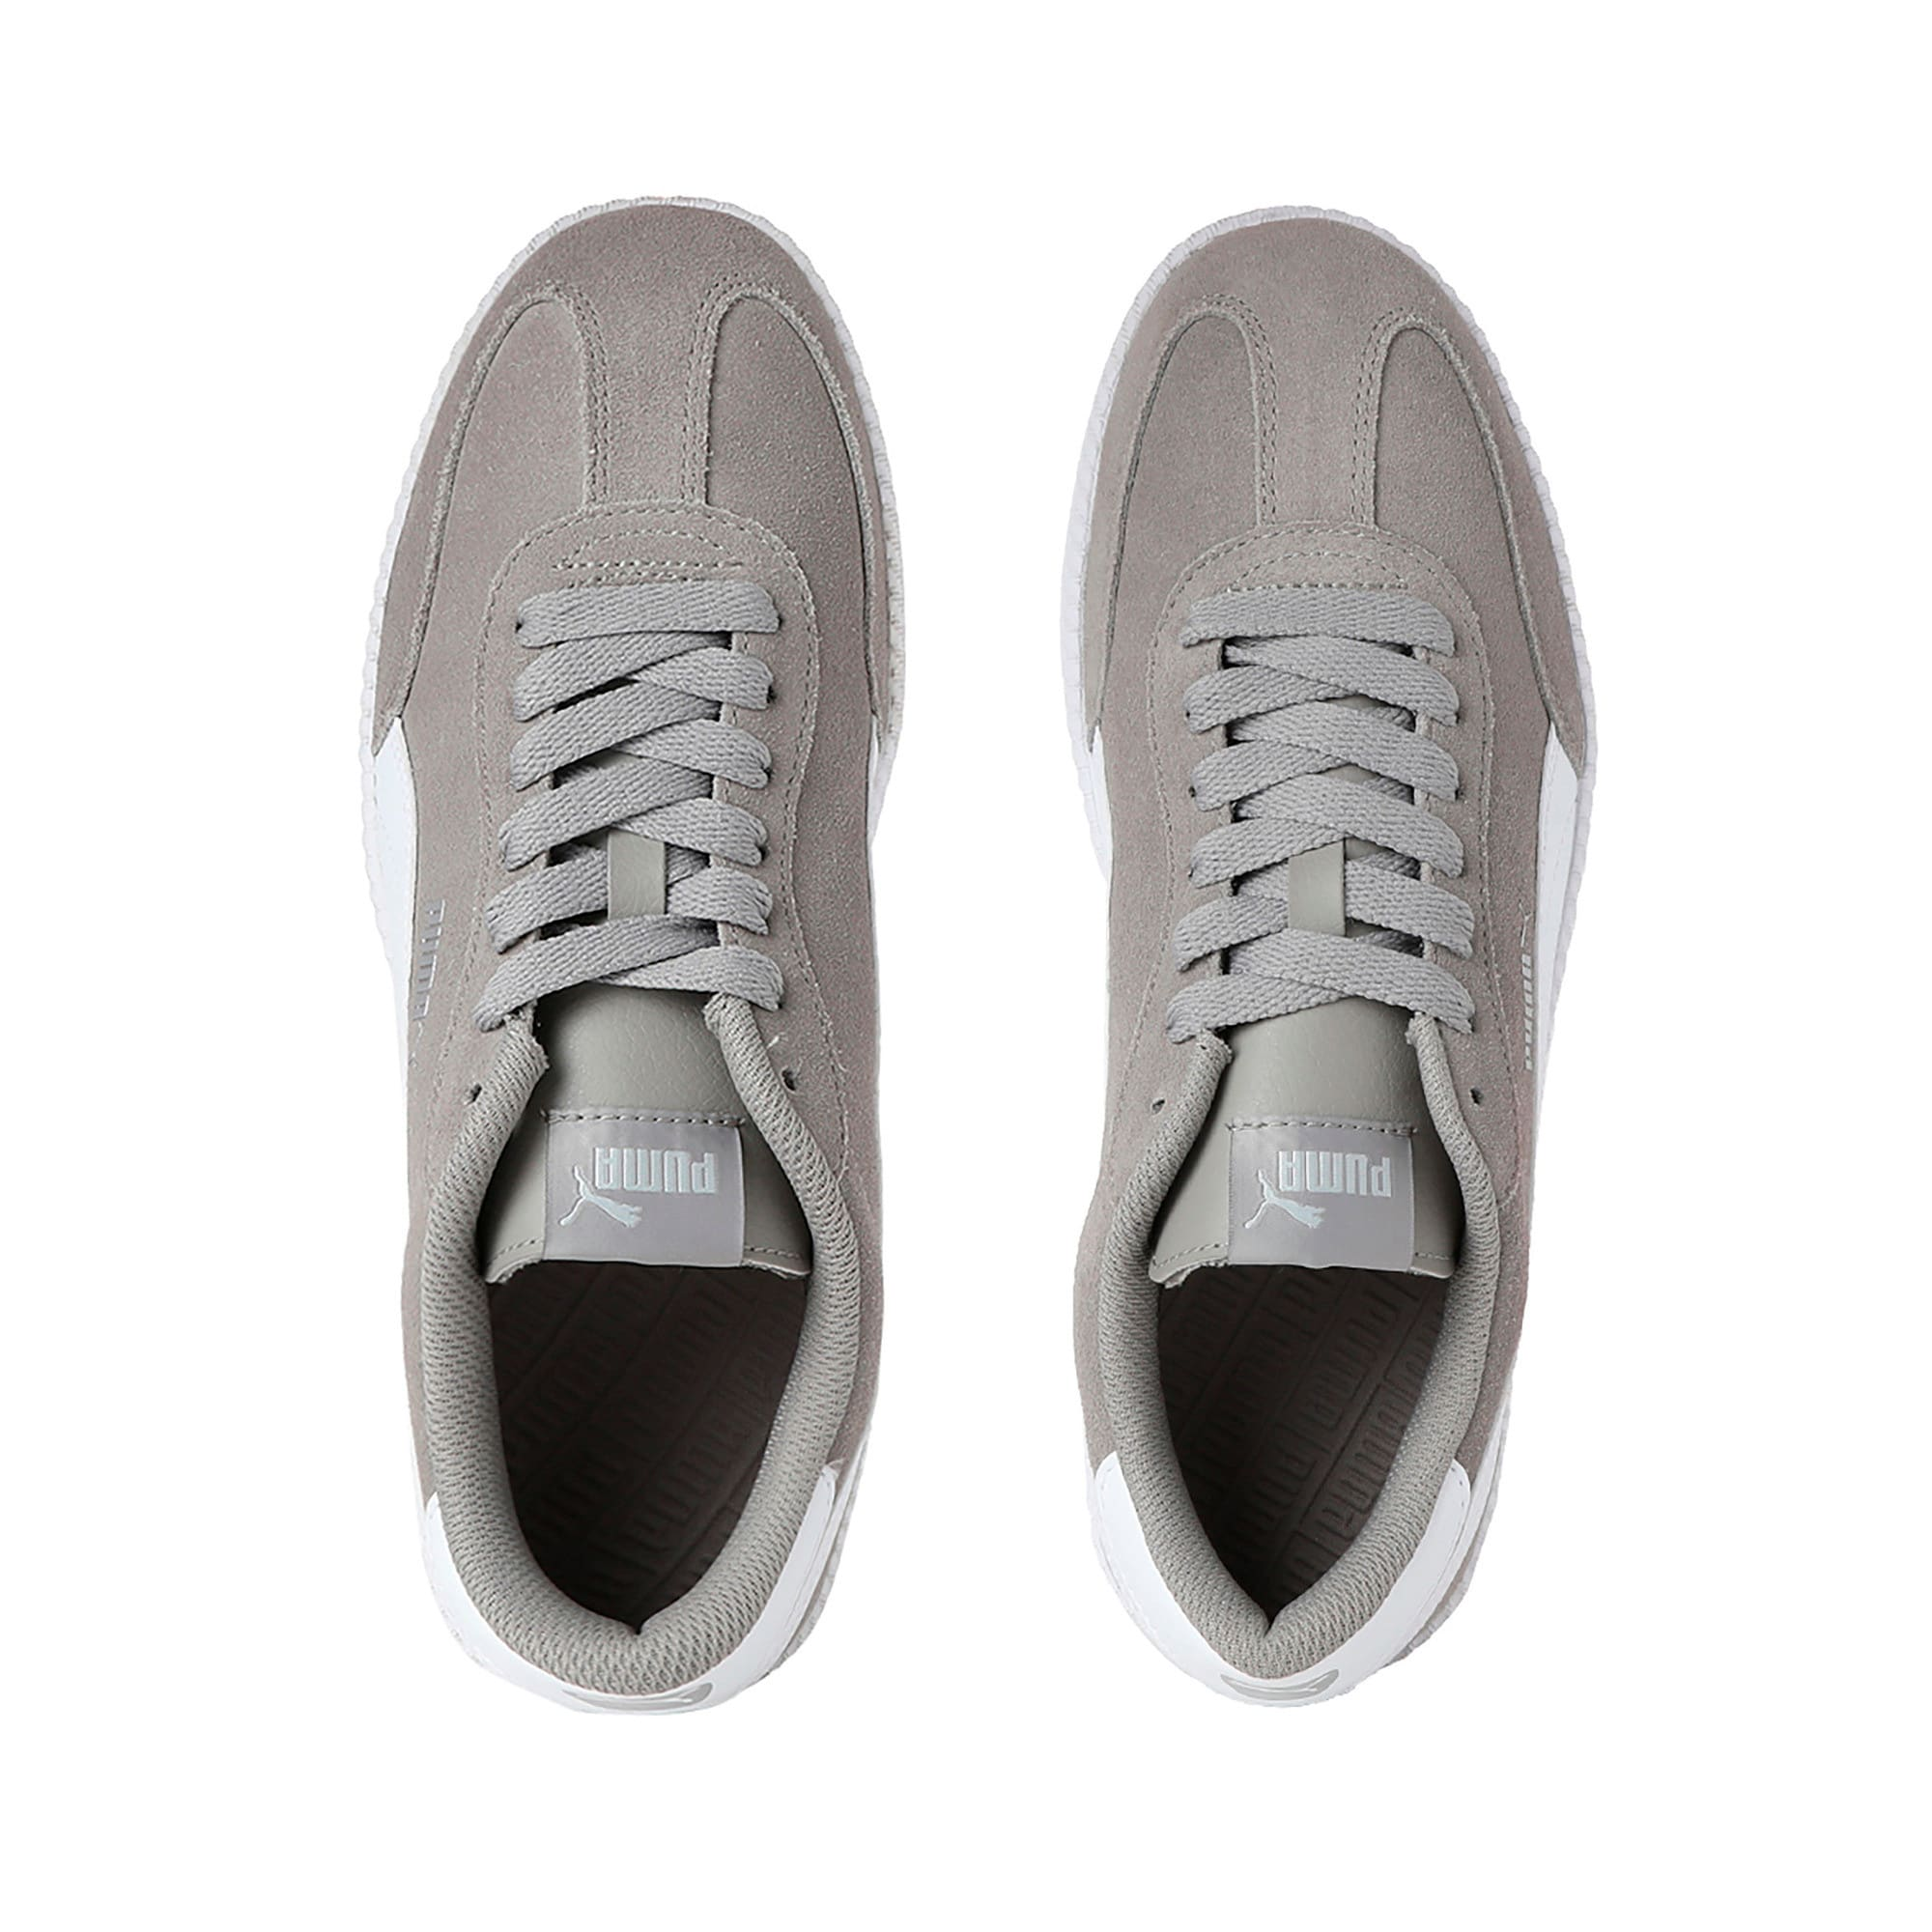 Thumbnail 6 of Astro Cup Trainers, Elephant Skin-Puma White, medium-IND